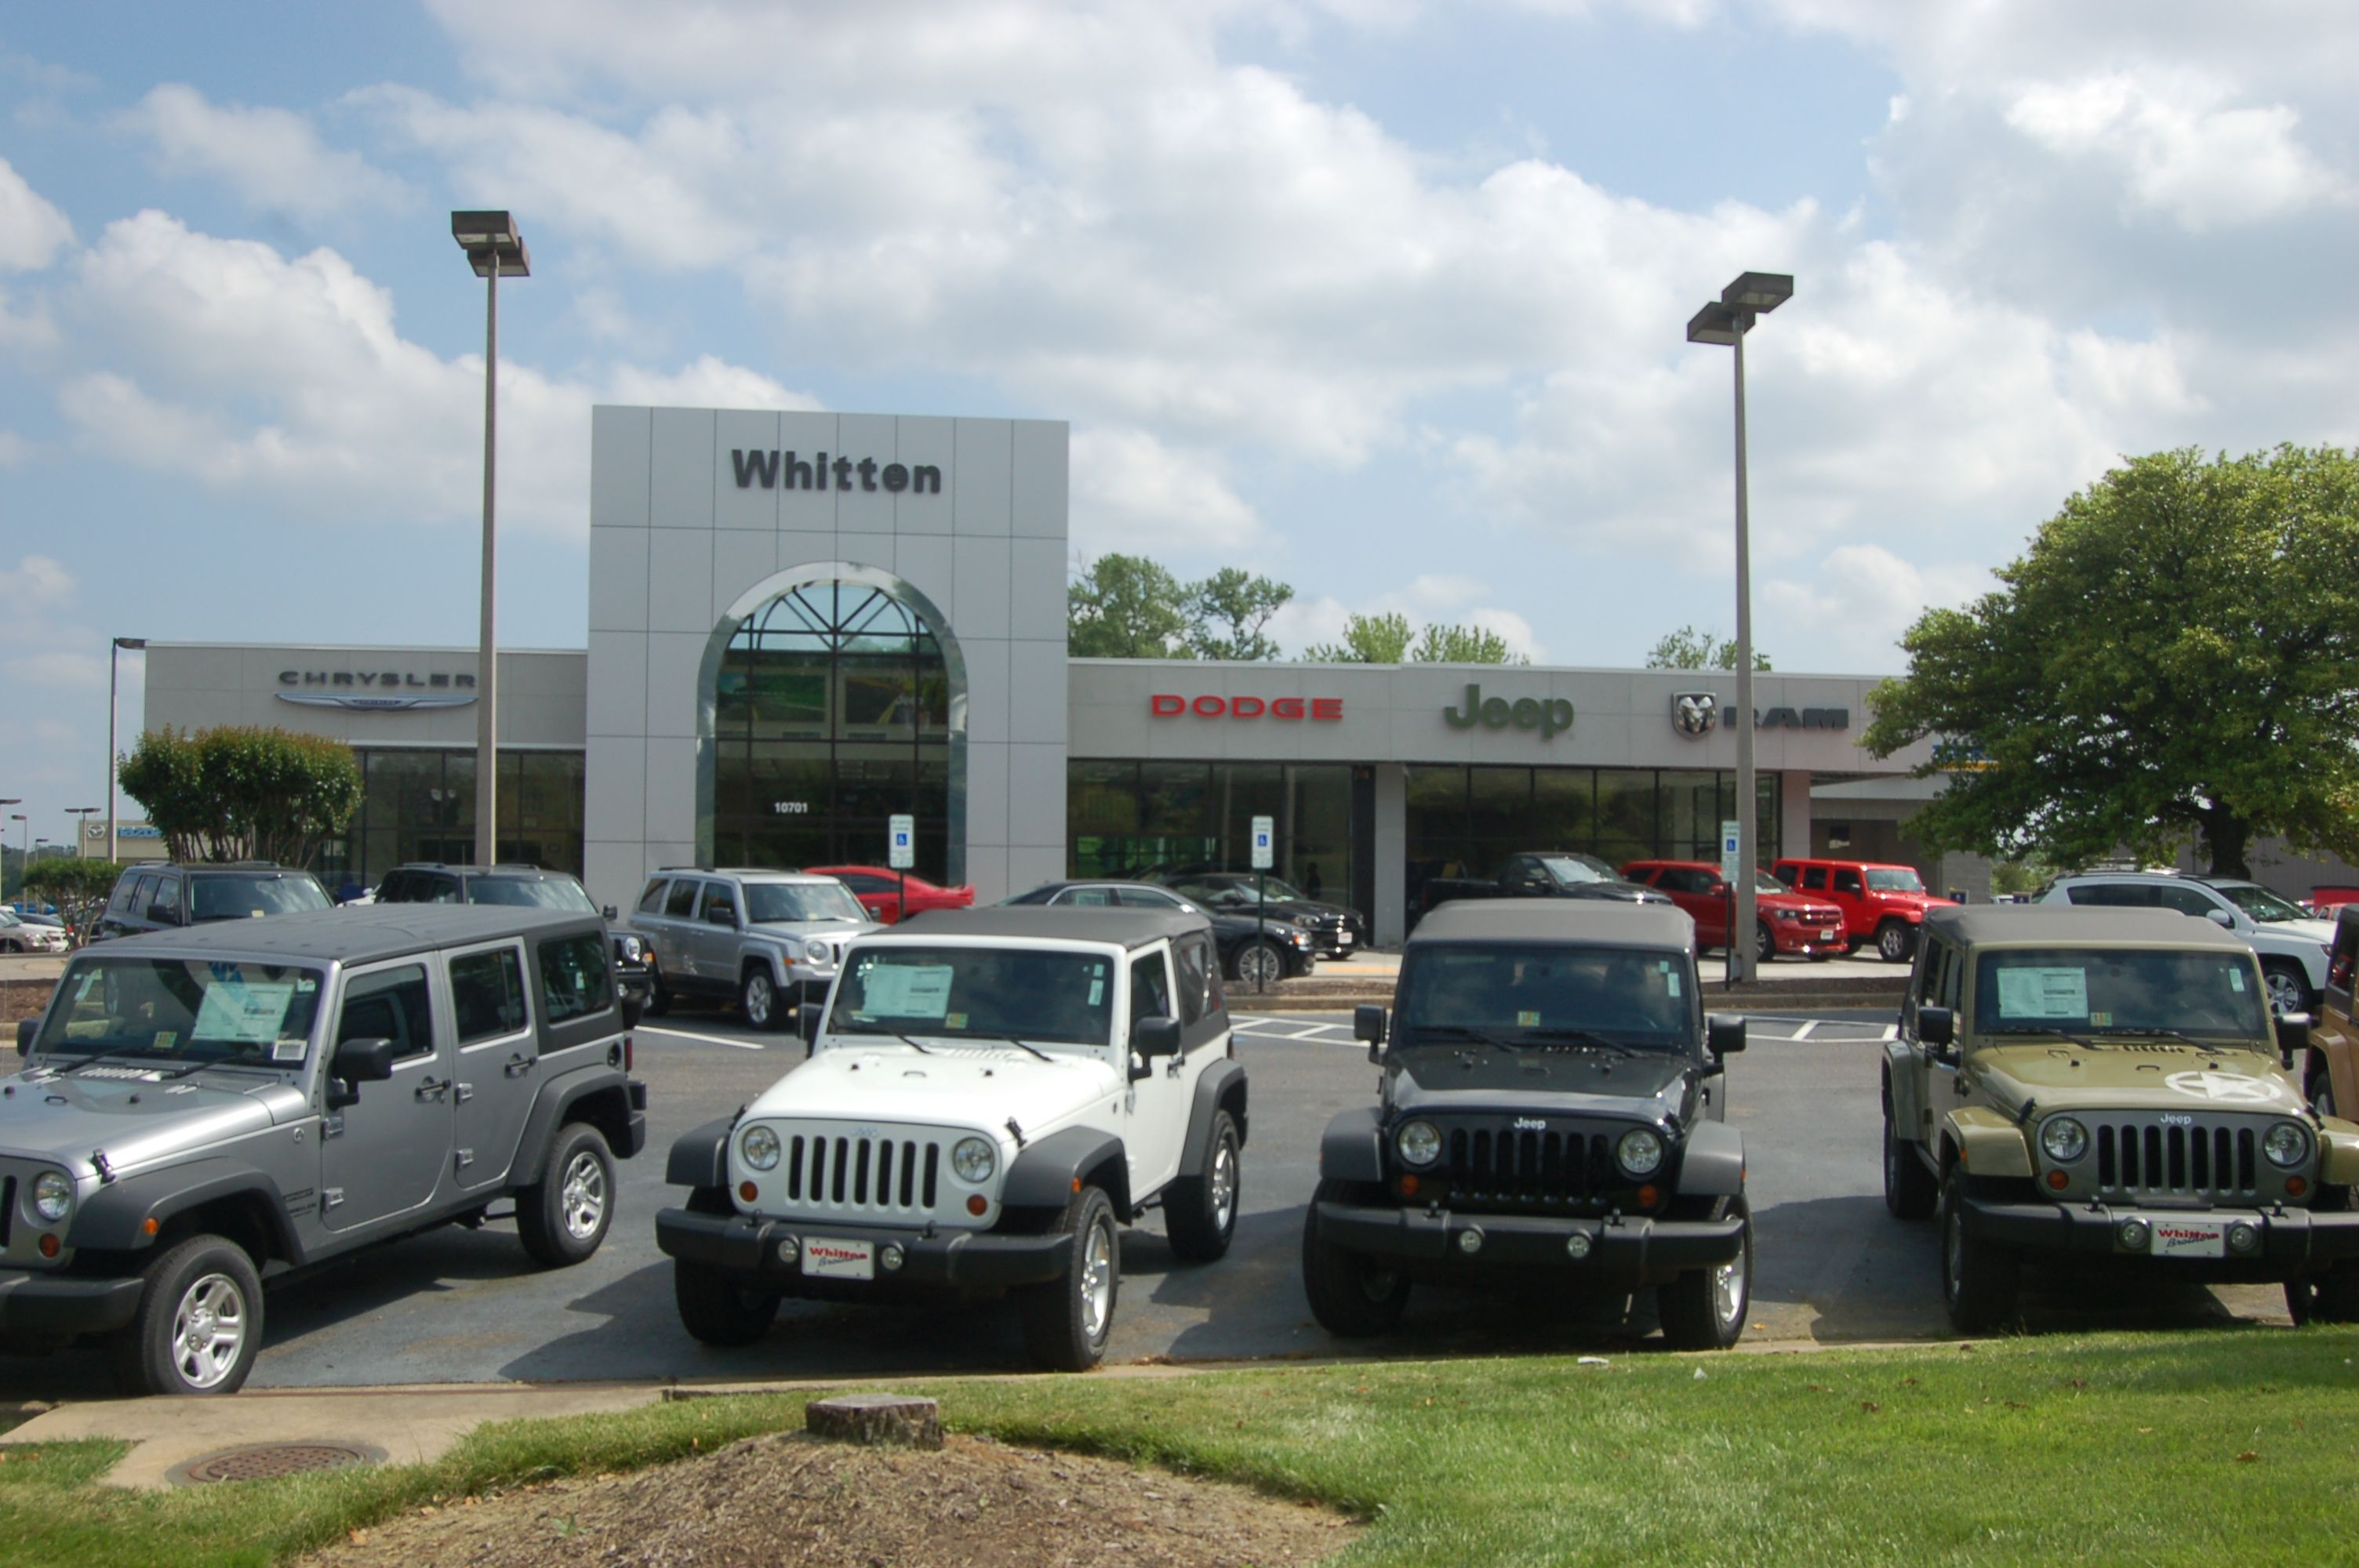 Jeep Dealers Near Me >> Pin By Dodge And Jeep Cars Images On Dodge And Jeep Cars Images